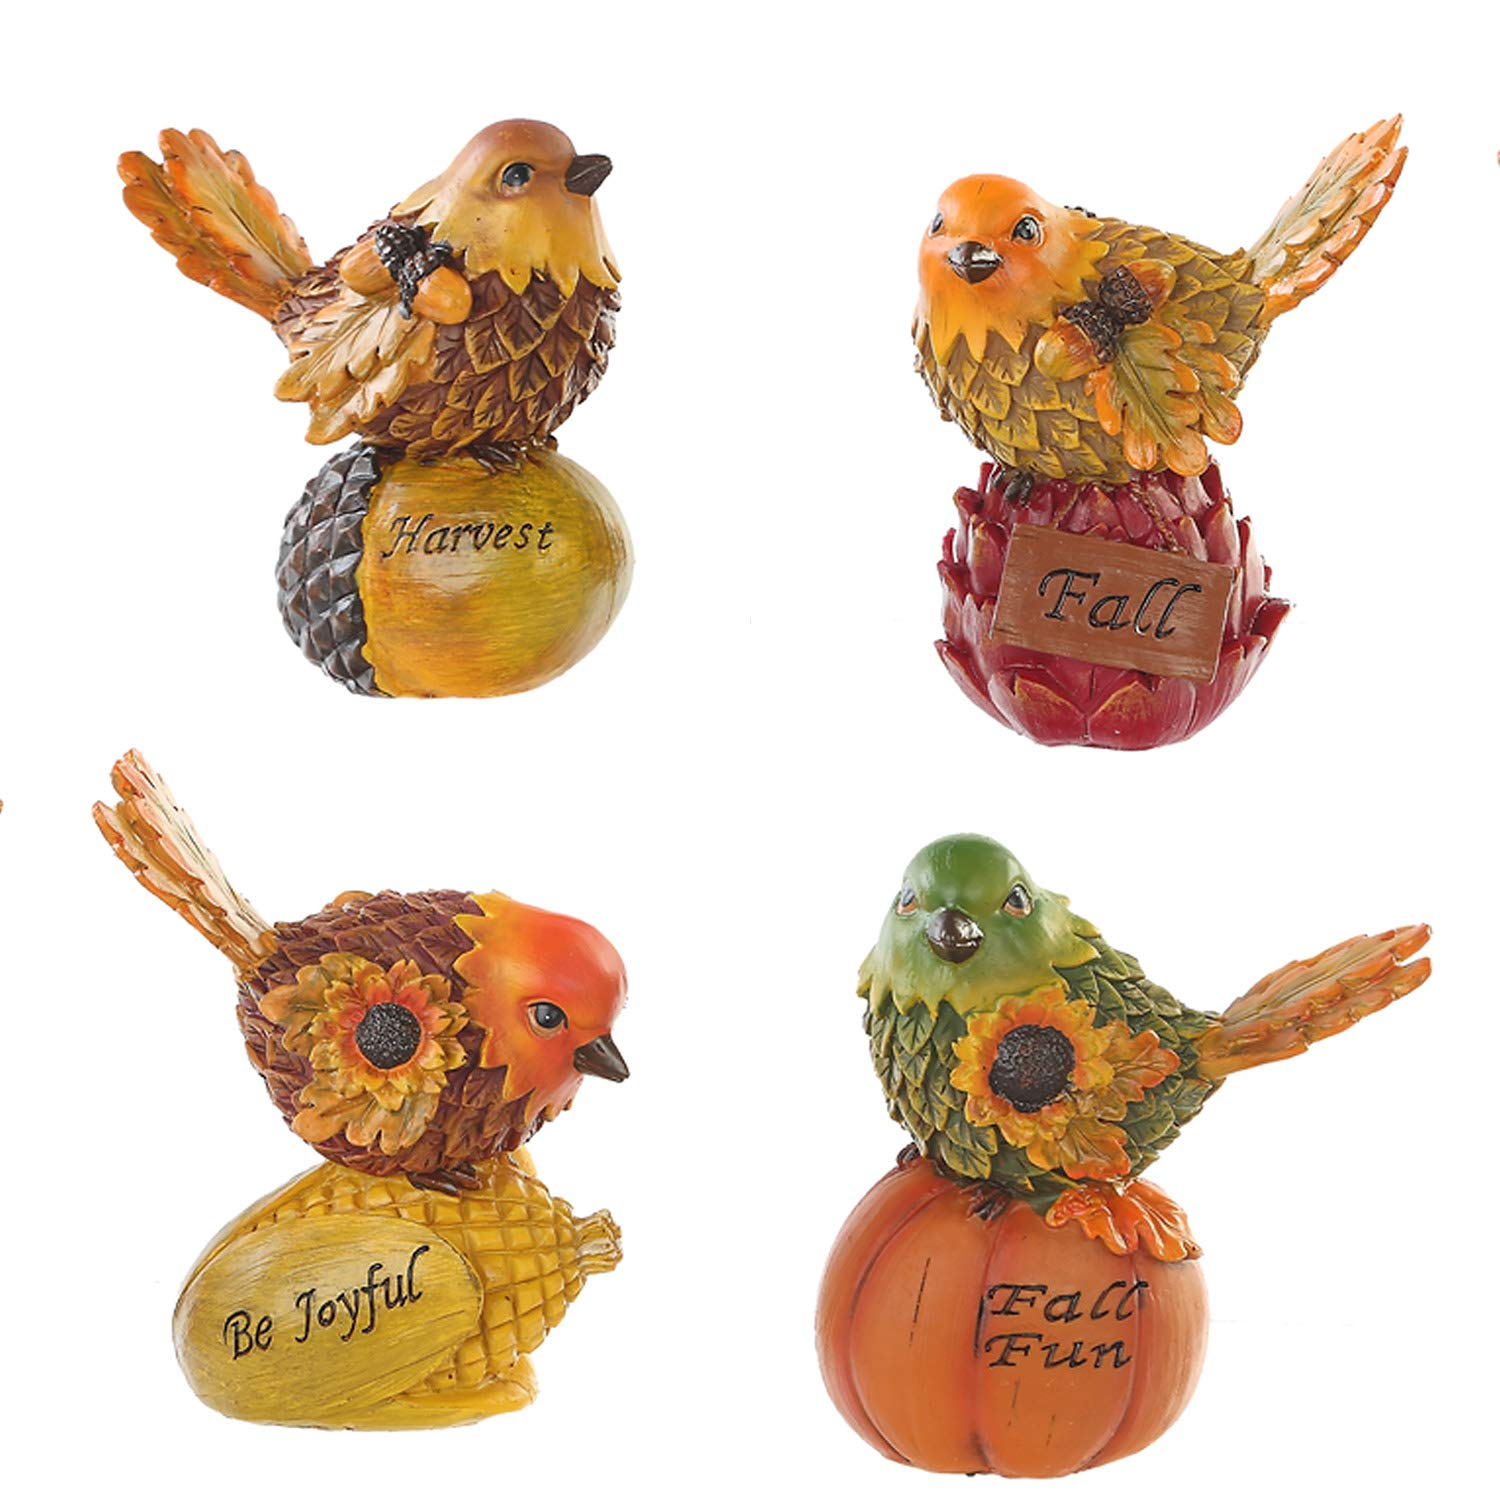 Goose Creek Acorn Bird Tabletop Figurines Cute Sparrow Fall Harvest Decorations,Set of 4 by Goose Creek